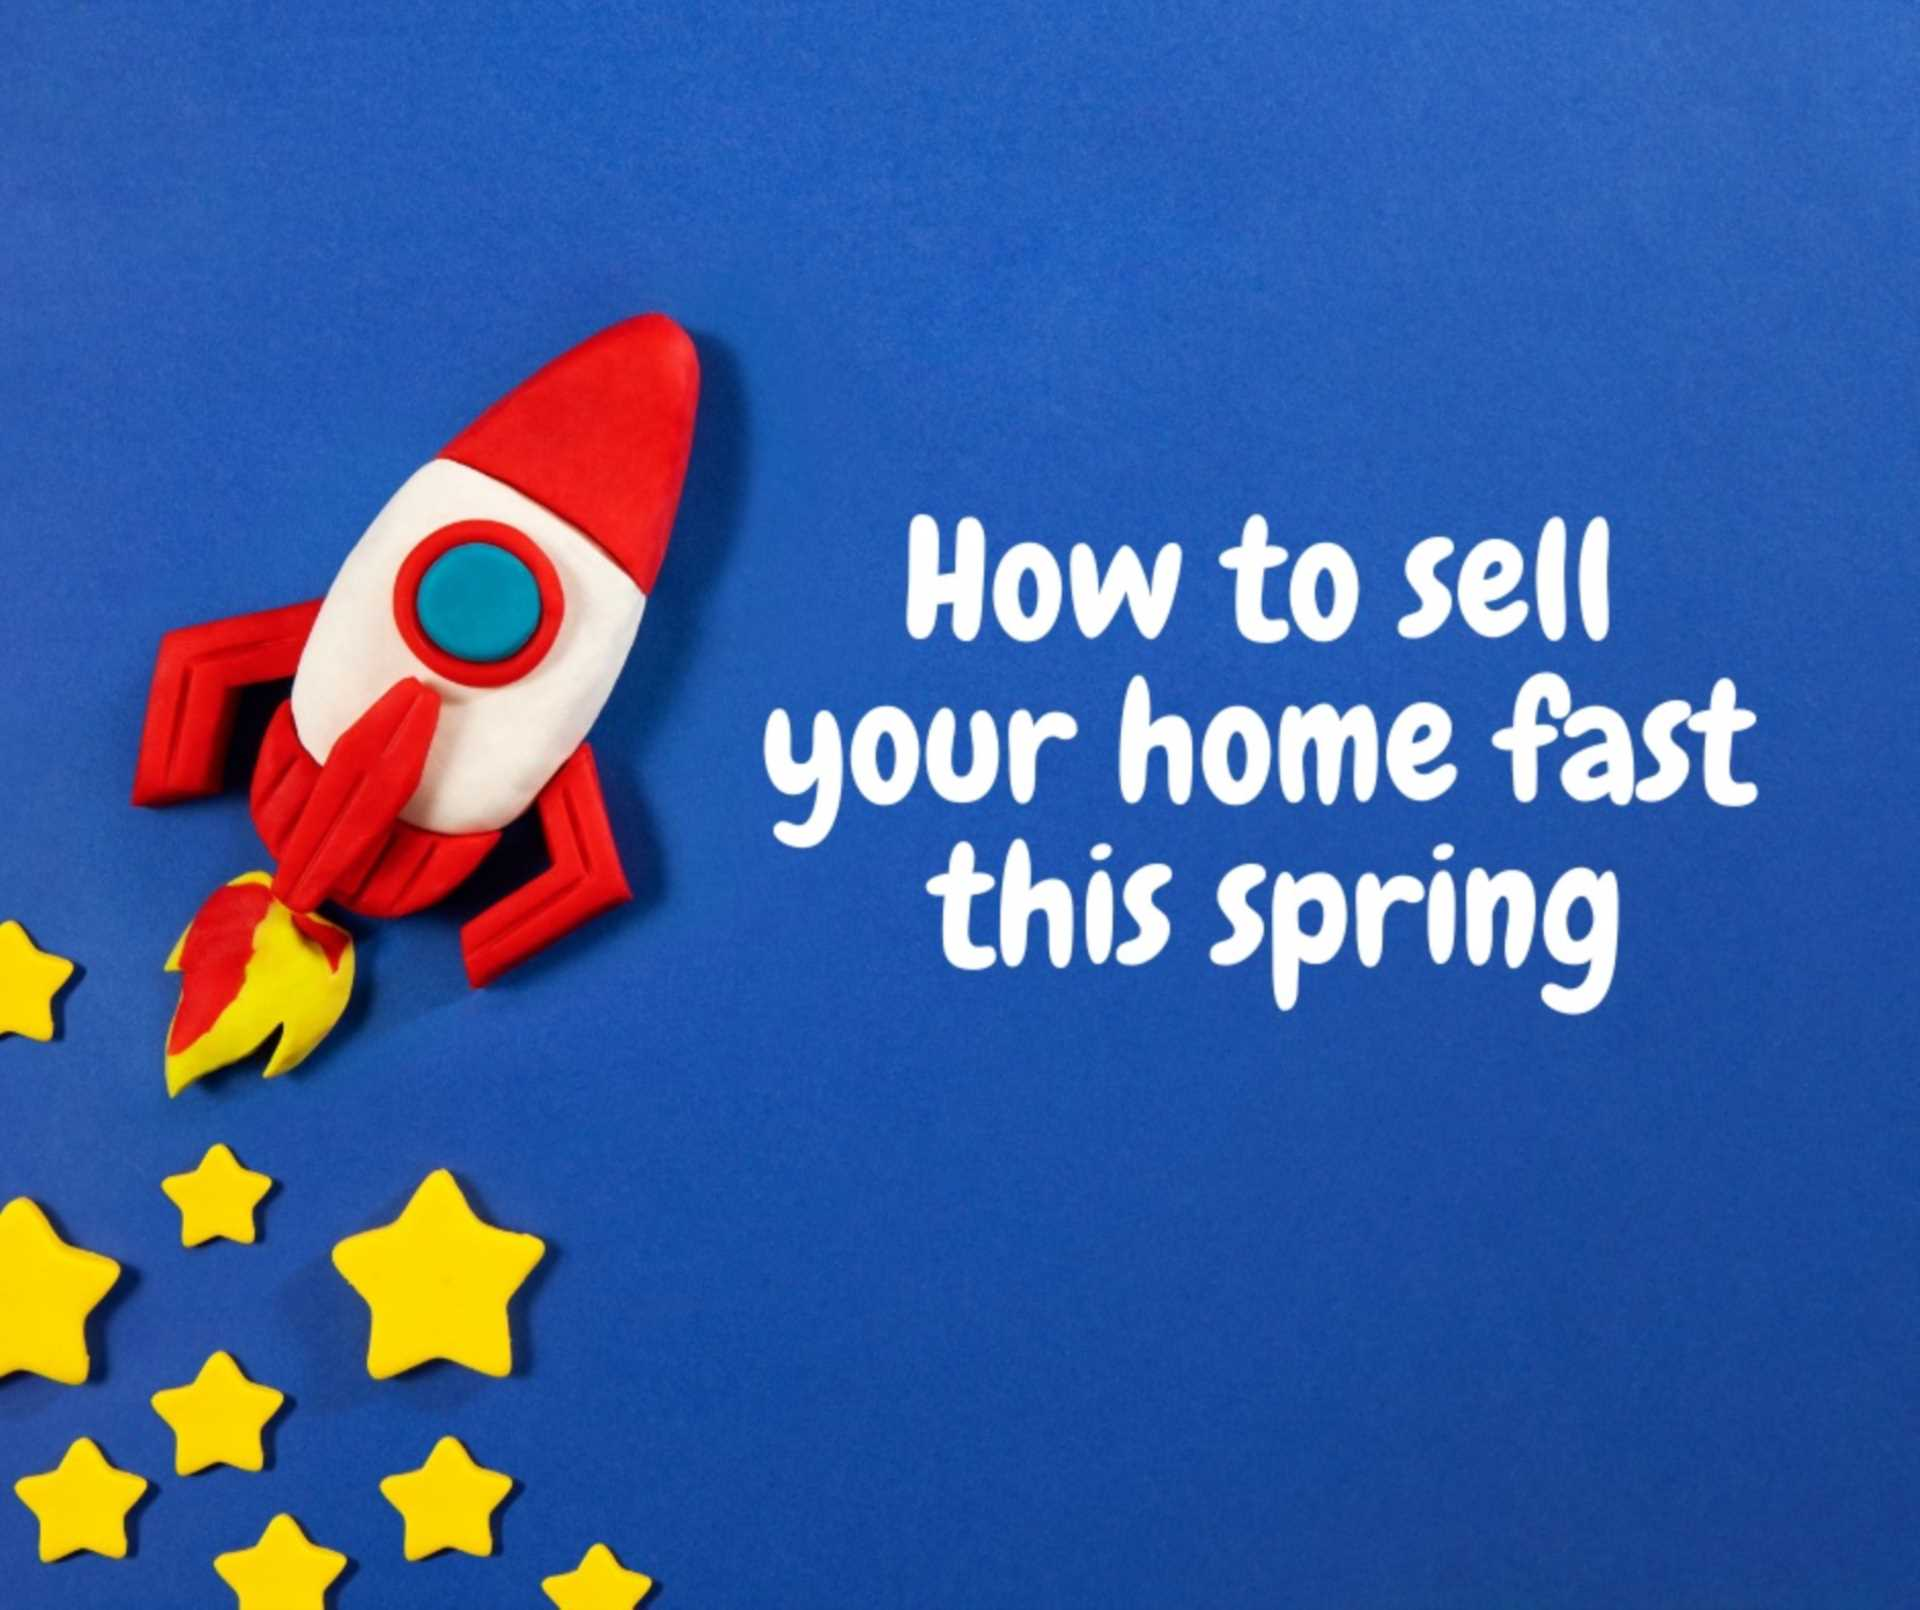 How to Sell Your Home Fast This Spring